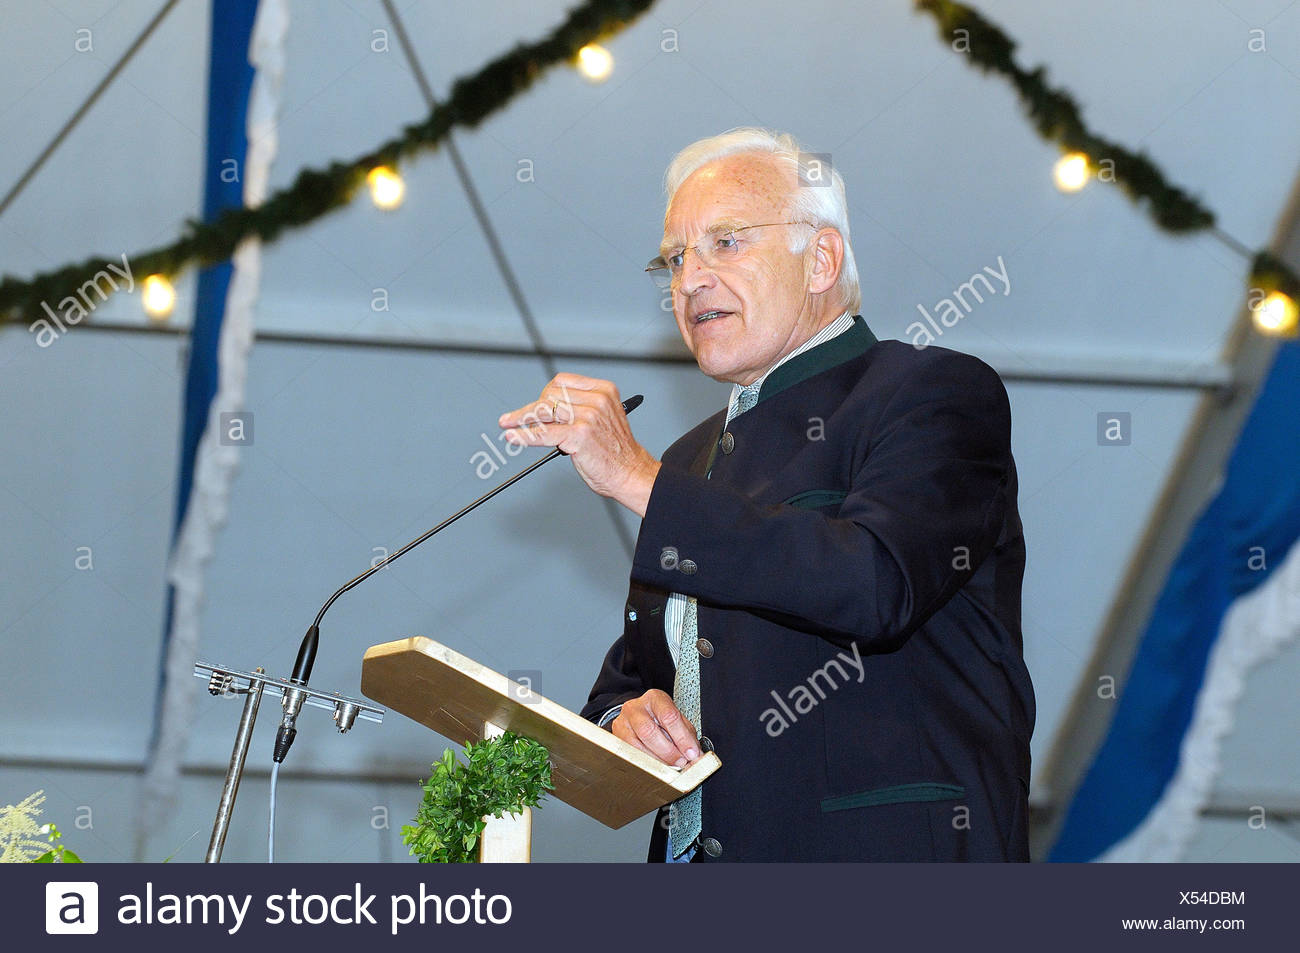 Dr. Edmund Stoiber holding a speech at a lectern in a beer tent Grosshoehenrain Upper Bavaria Bavaria  sc 1 st  Alamy & Dr. Edmund Stoiber holding a speech at a lectern in a beer tent ...